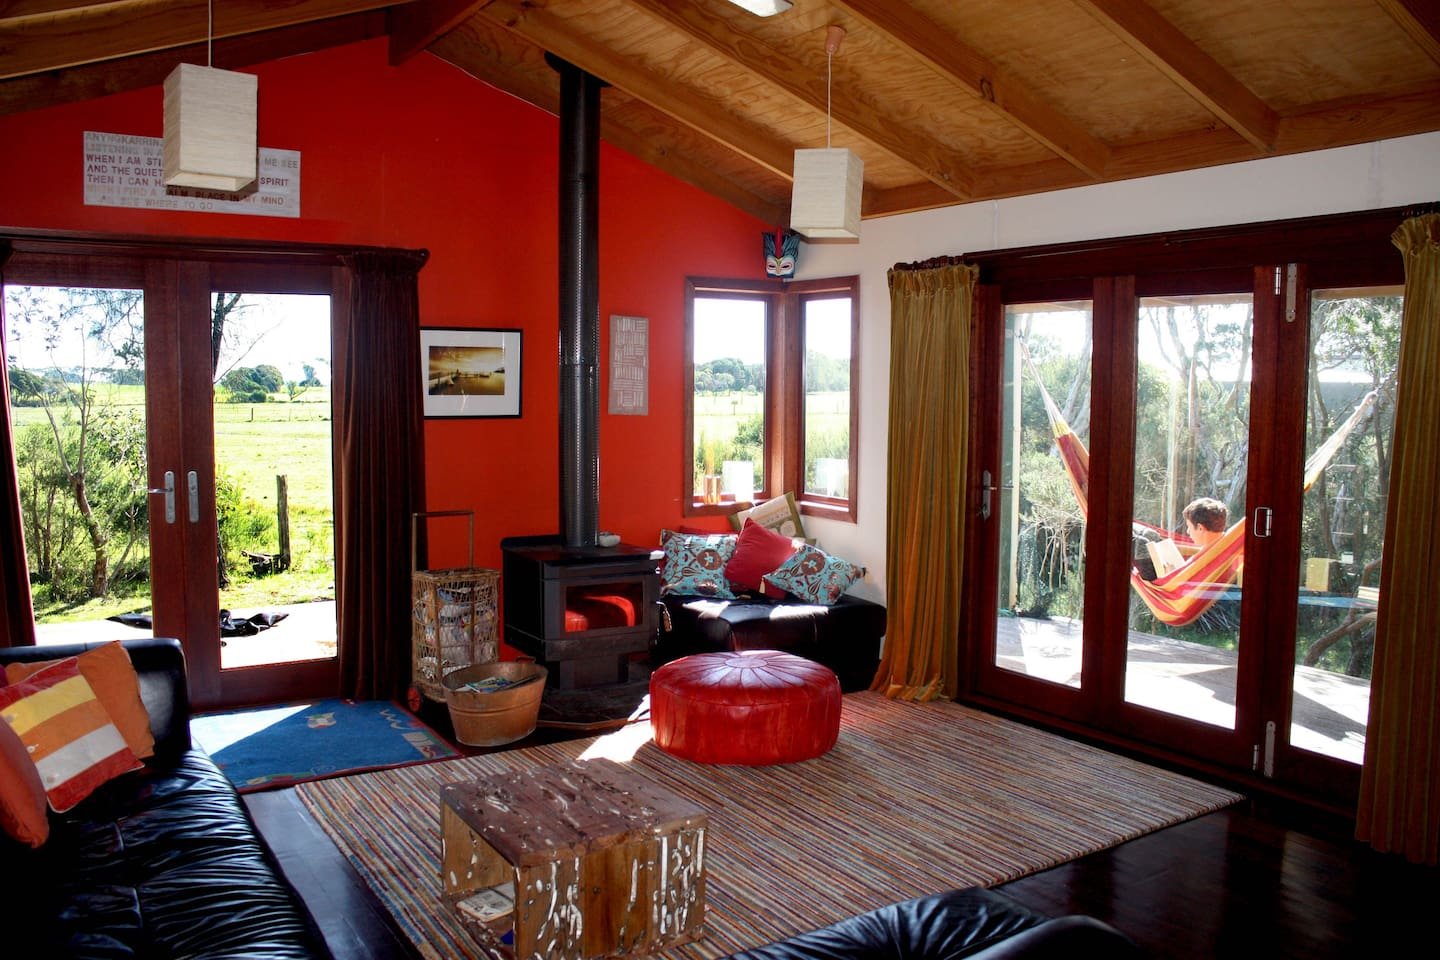 Open plan living opens out onto north and west decks surrounding by native garden setting.